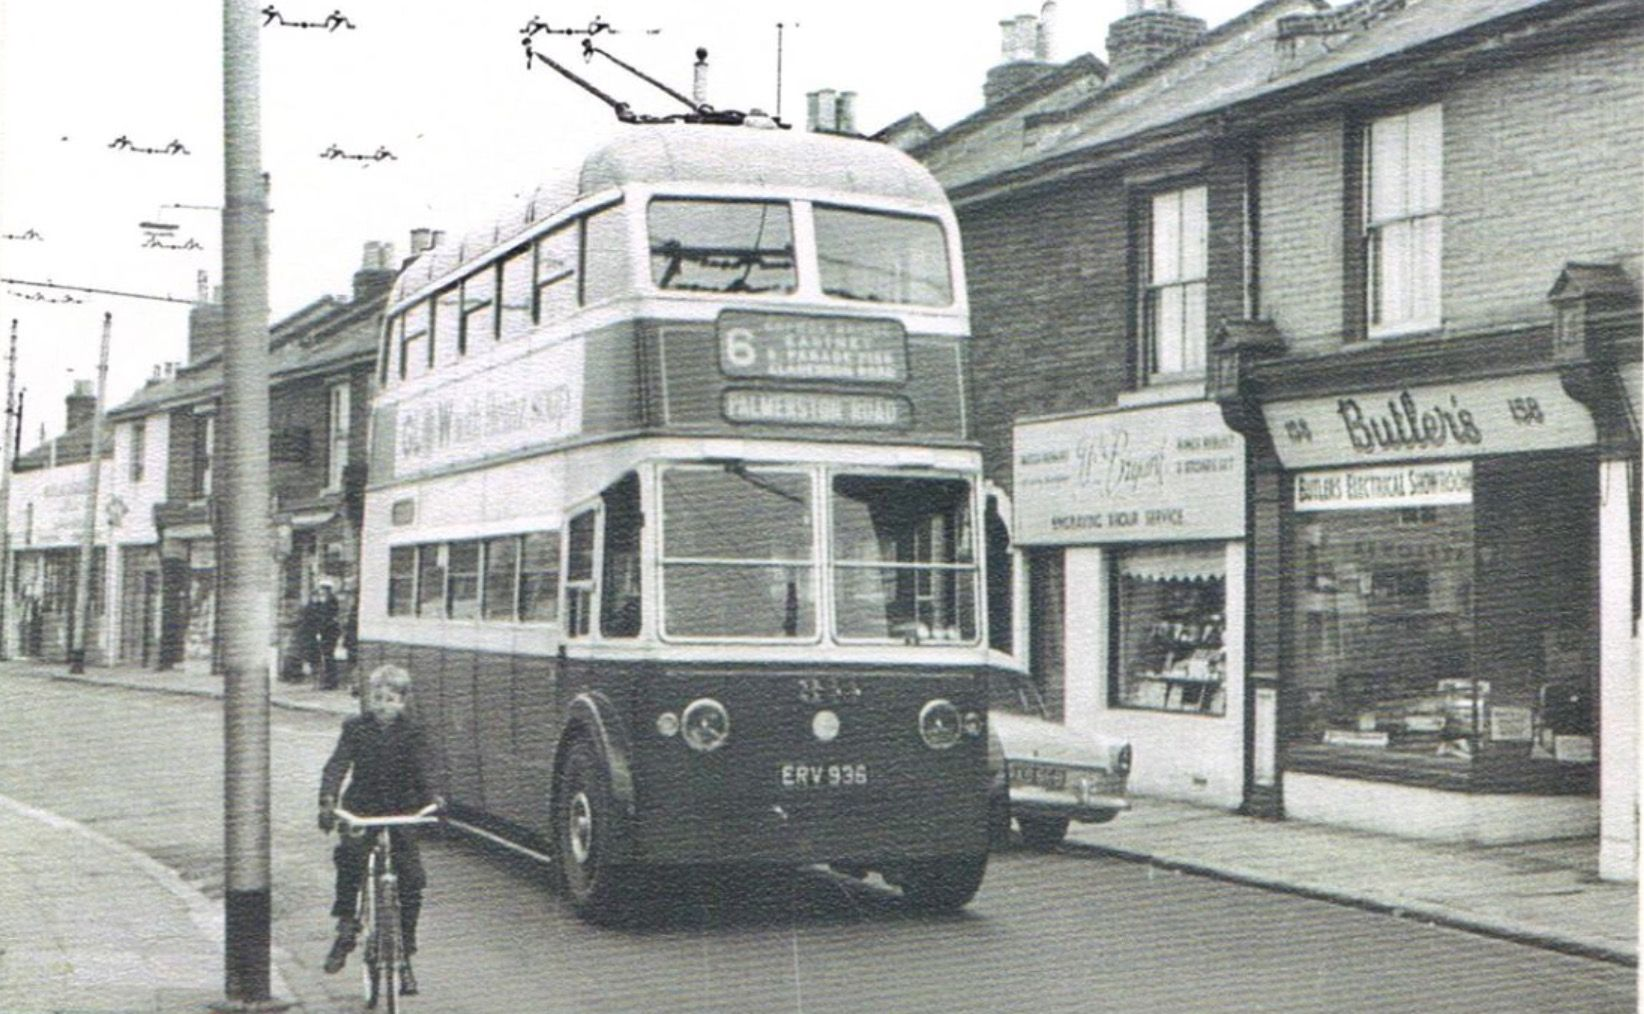 No 6 Trolley bus, Highland Rd, outside Butlers the bike shop circa 1960's